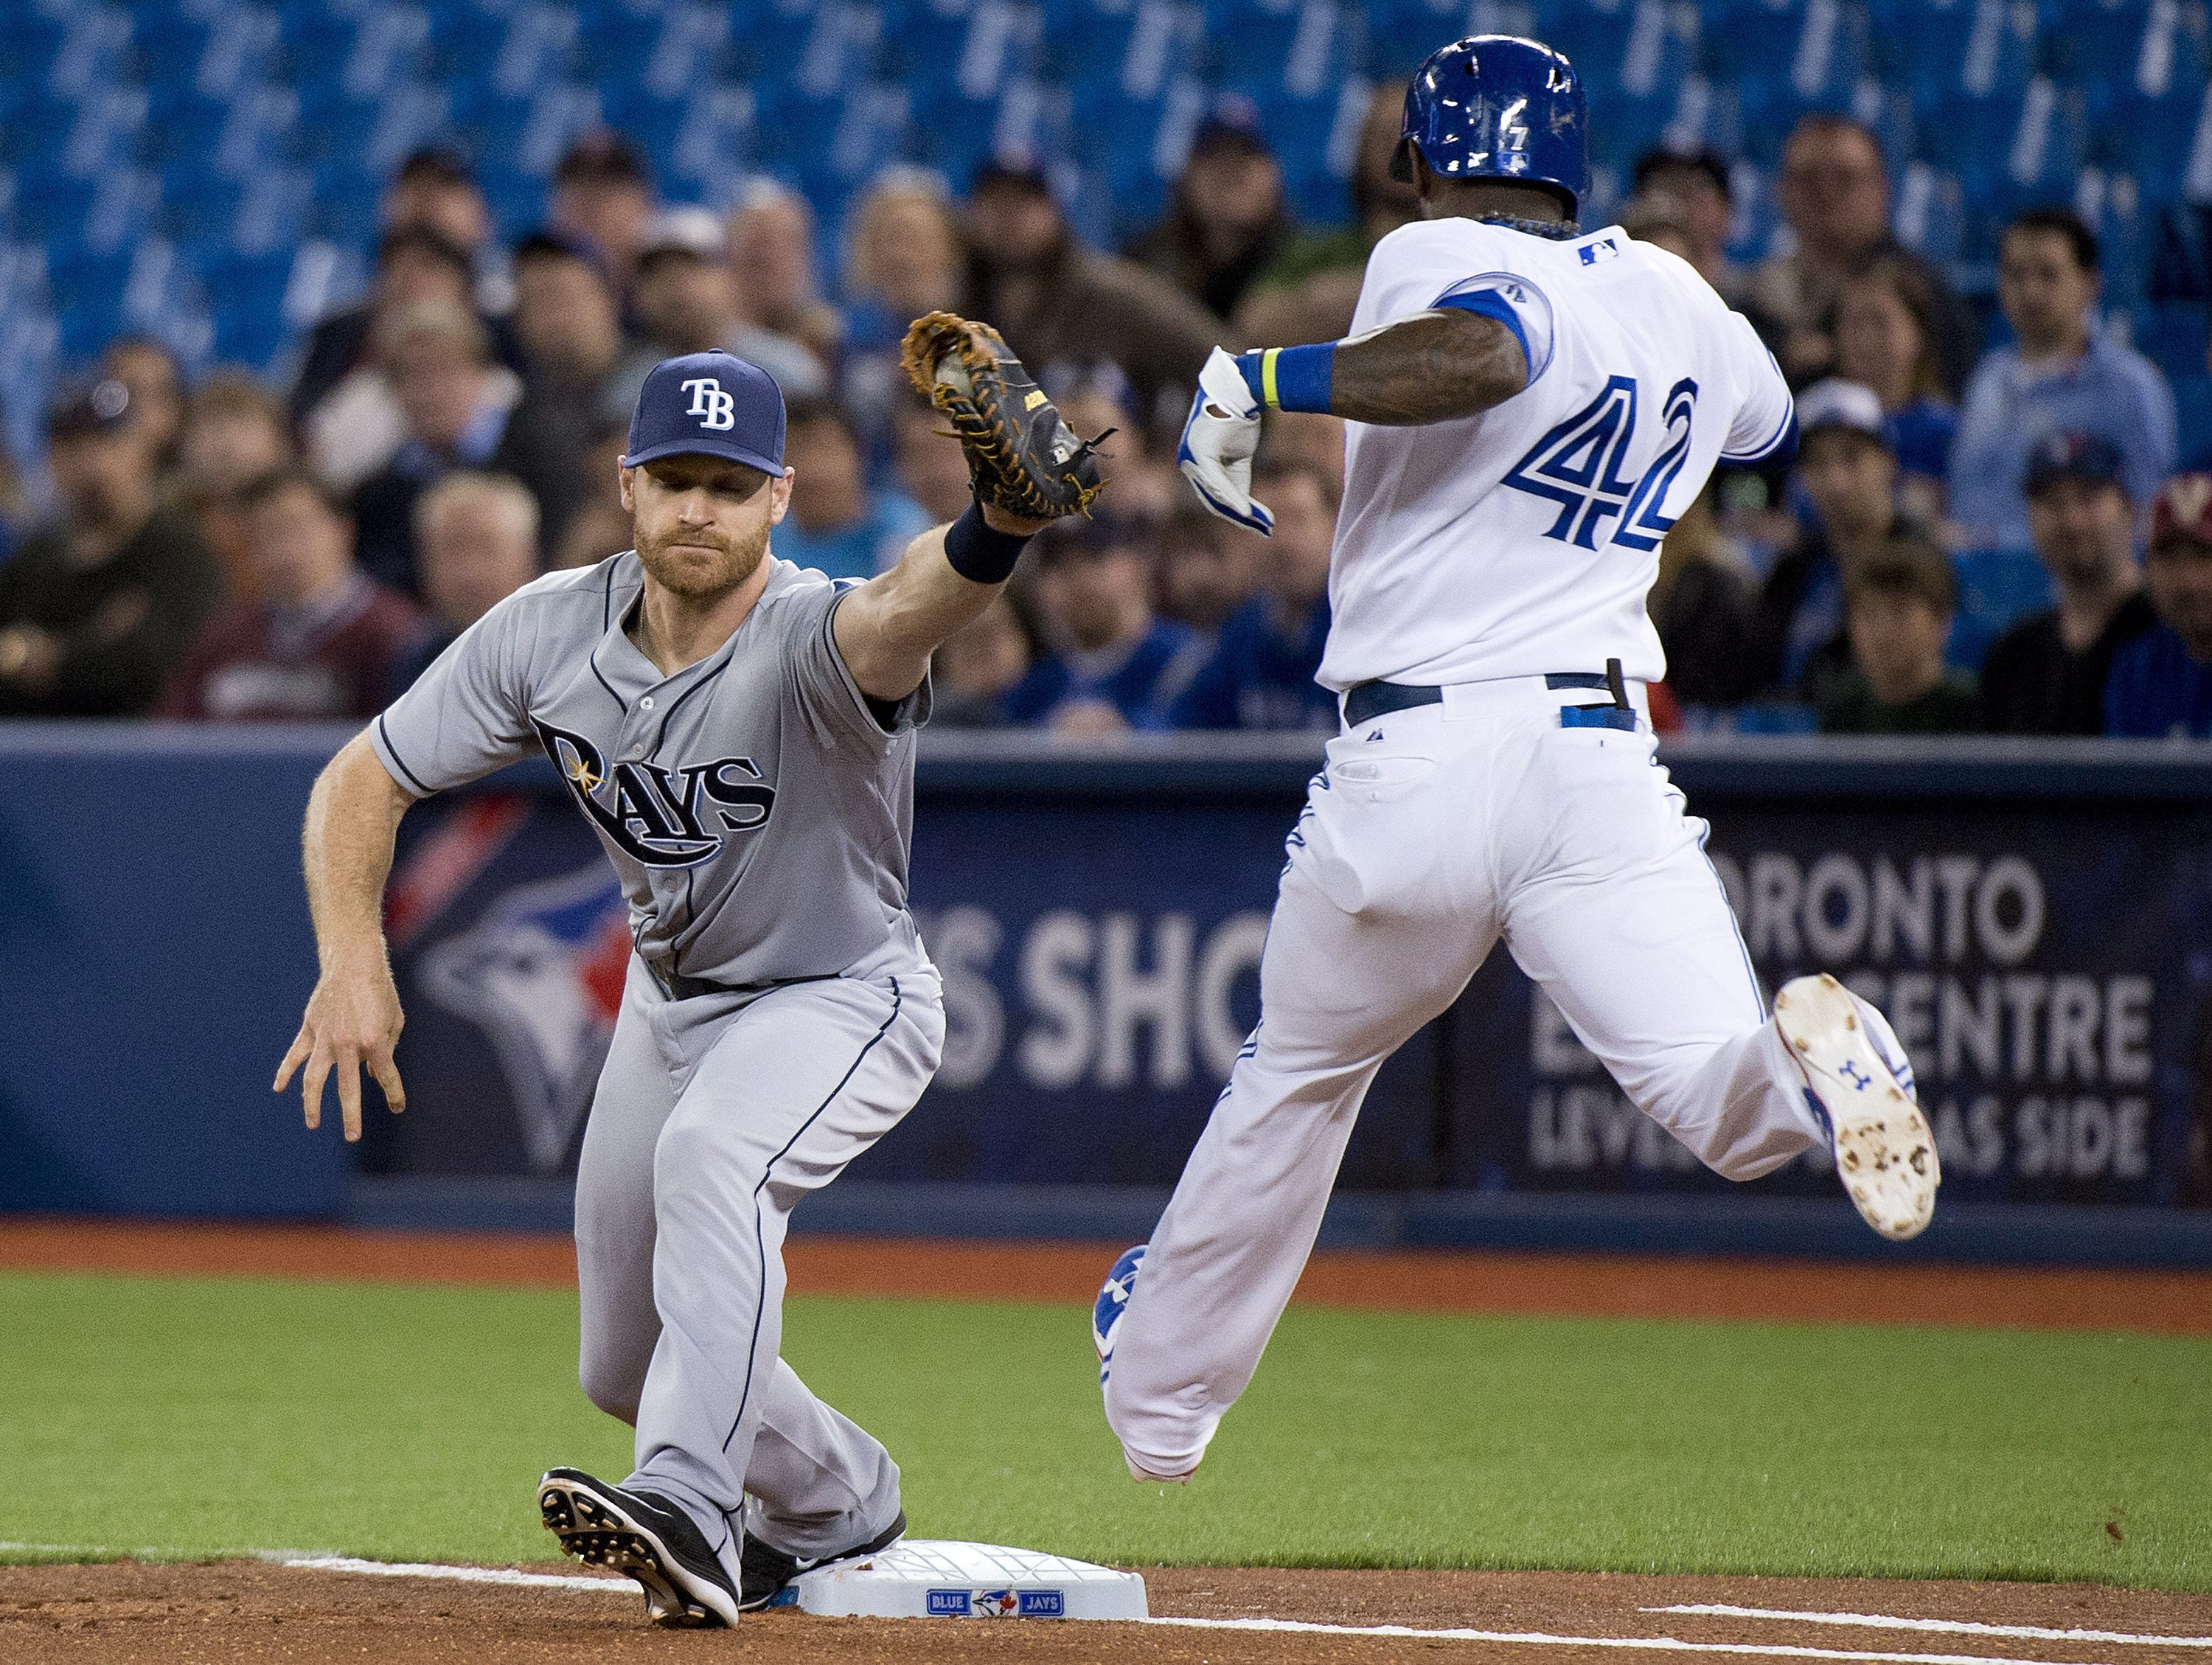 Toronto Blue Jays shortstop Jose Reyes is thrown out as Tampa Bay Rays first baseman Logan Forsythe, left, makes the catch during first inning of a baseball game, Wednesday, April 15, 2015 in Toronto. (Nathan Denette/The Canadian Press via AP)  MANDATORY